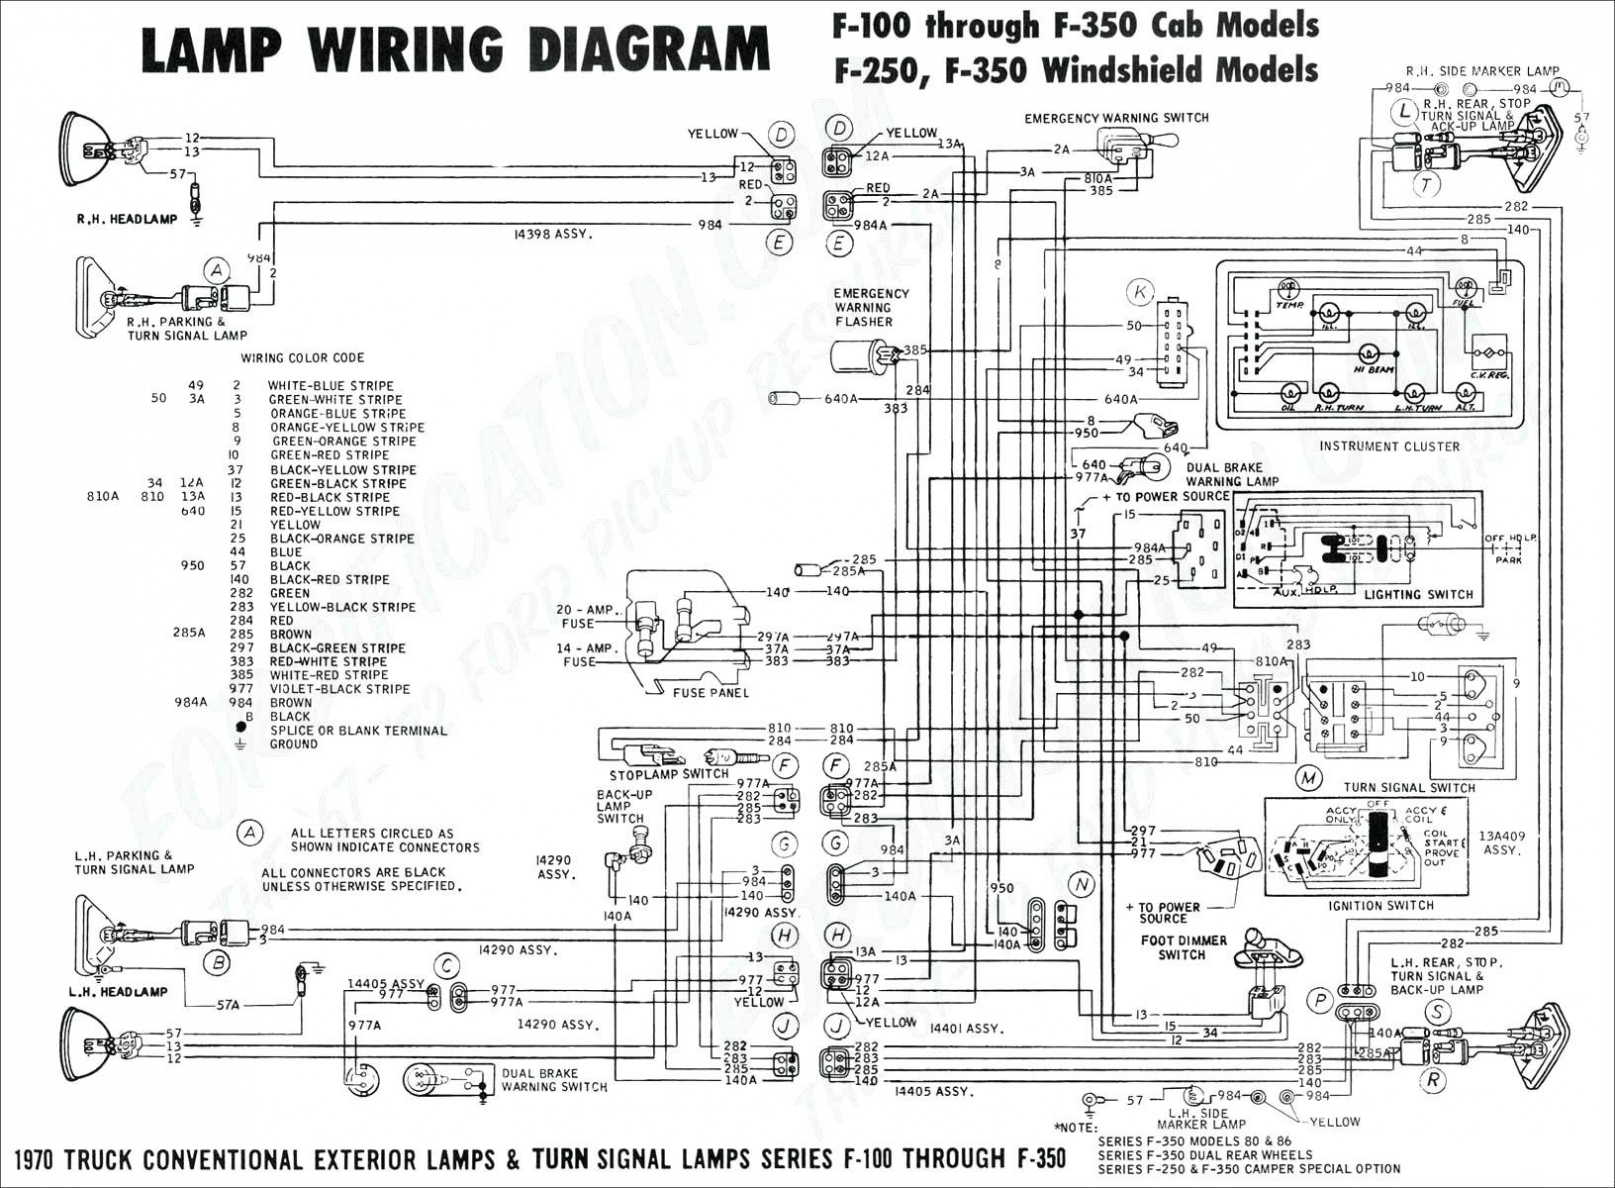 wiring diagram for 656 tractor wire management & wiring diagram  2002 indian chief wiring diagram #7